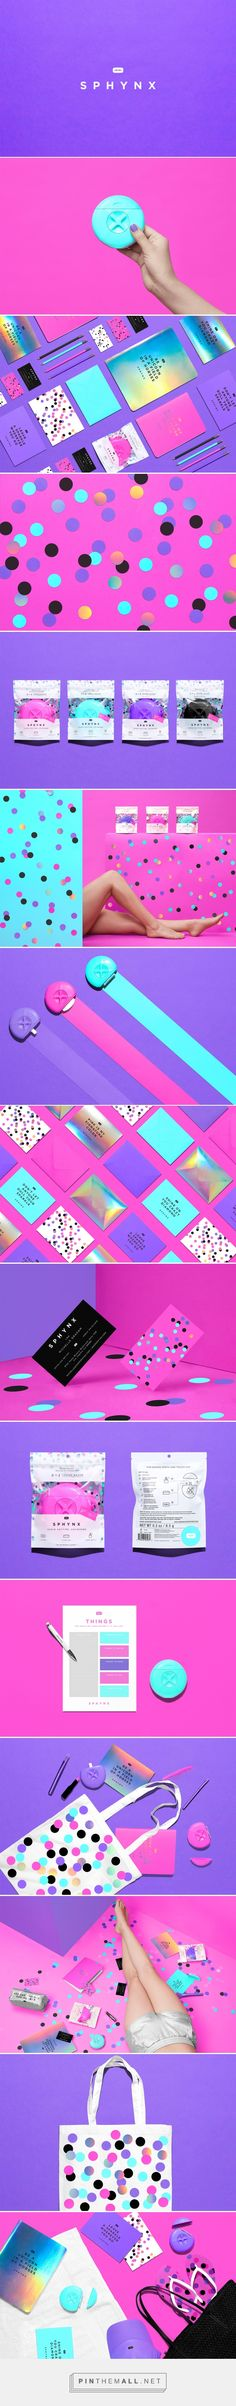 Sphynx Feminine Hygiene Device Branding and Packaging by Anagrama Studio   Fivestar Branding Agency – Design and Branding Agency & Curated Inspiration Gallery